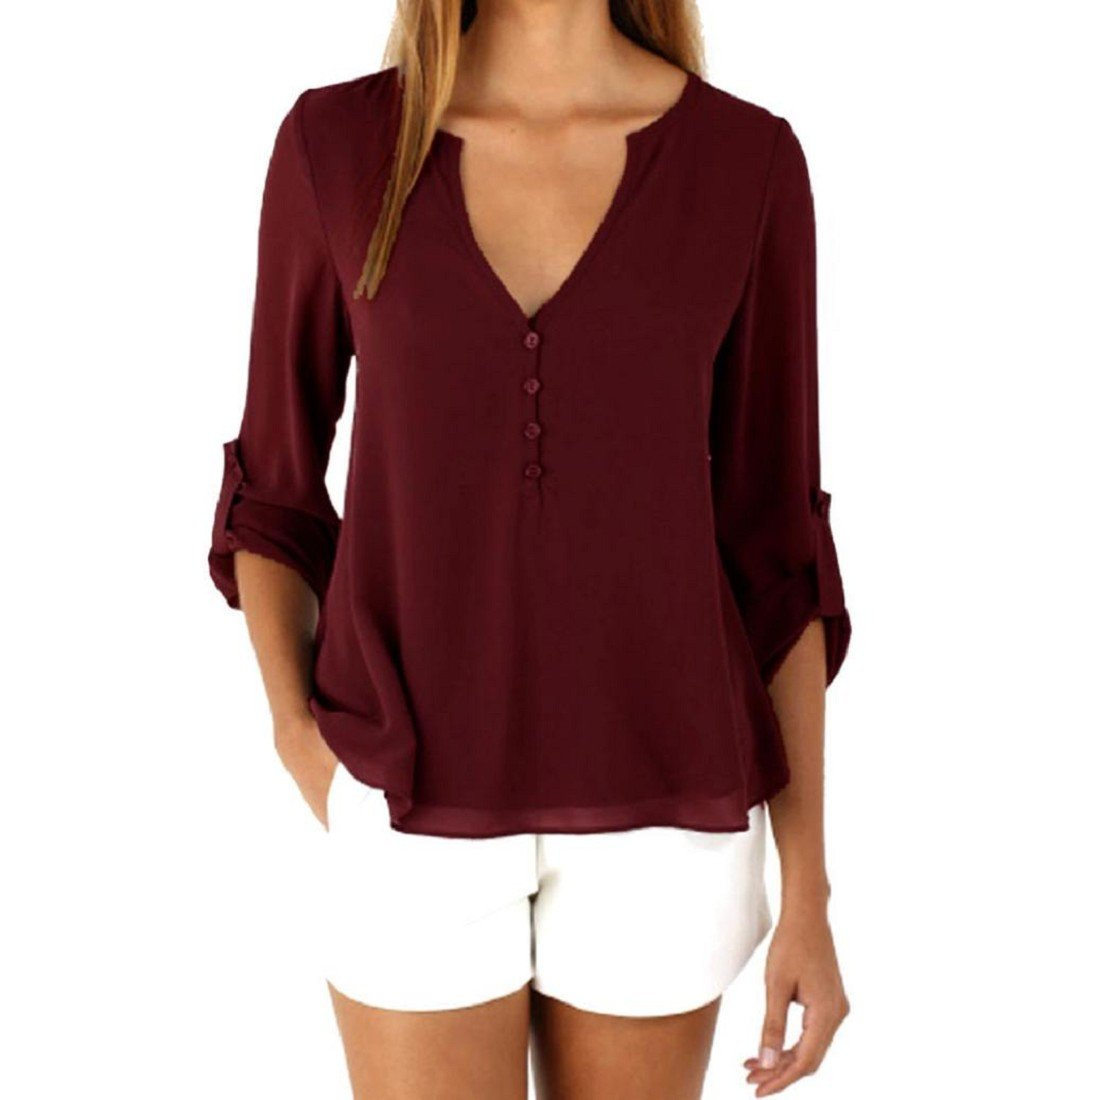 Orangeskycn Womens Blouses And Tops For Work Long Sleeve Chiffon Summer Shirt